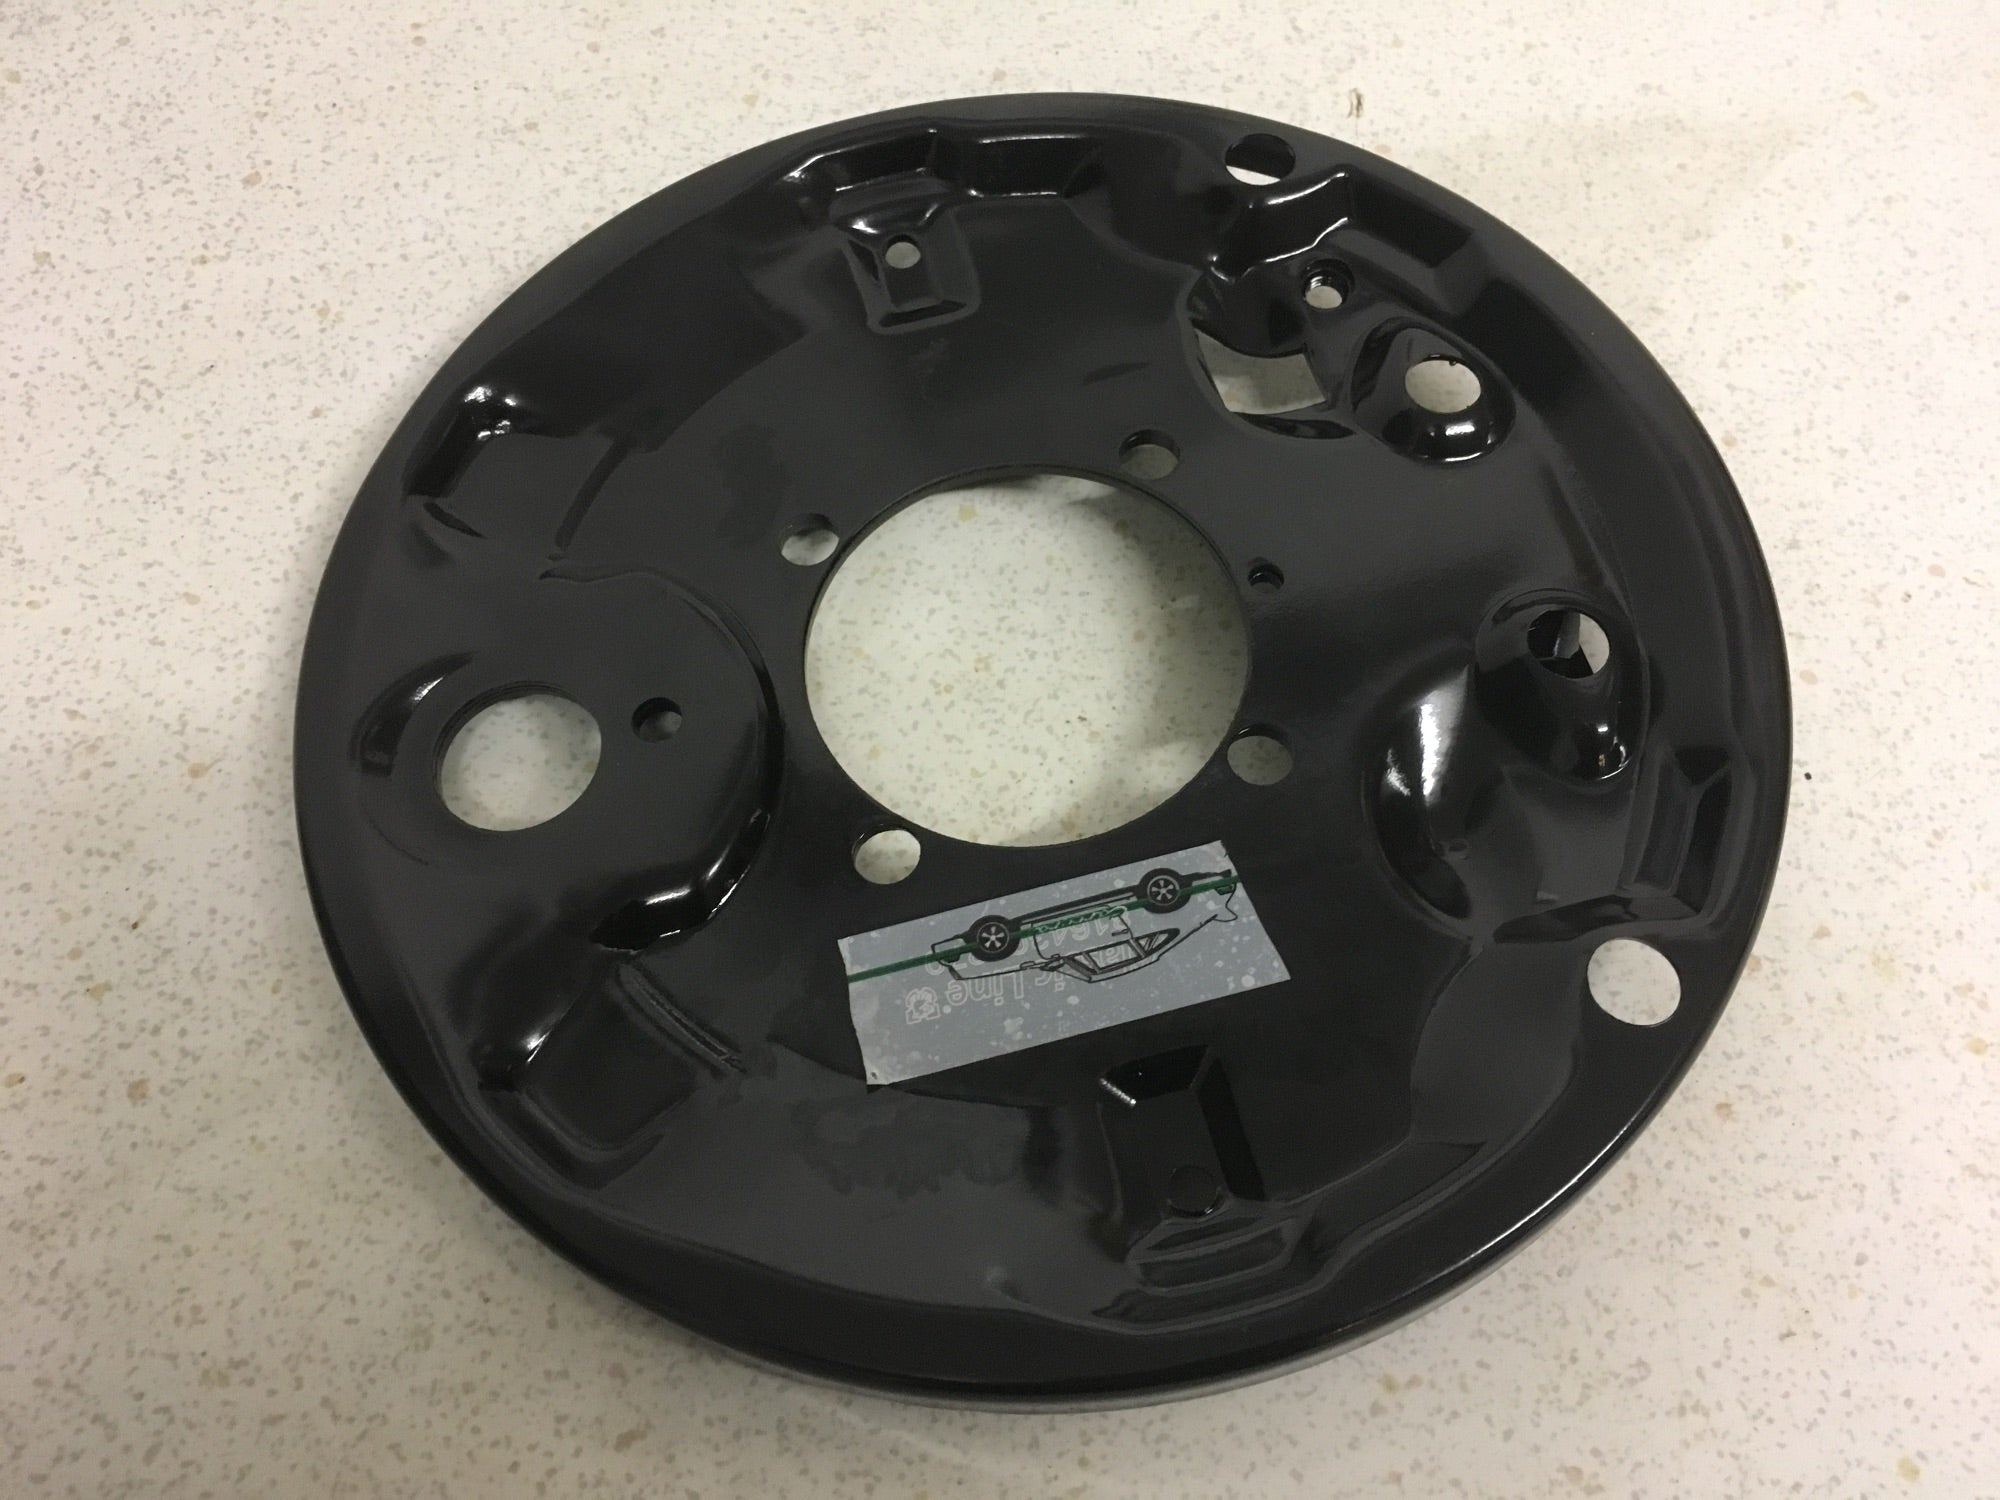 Porsche 924 4 stud brake backing plate (USED) - Woolies Workshop - Porsche 924 944 spares